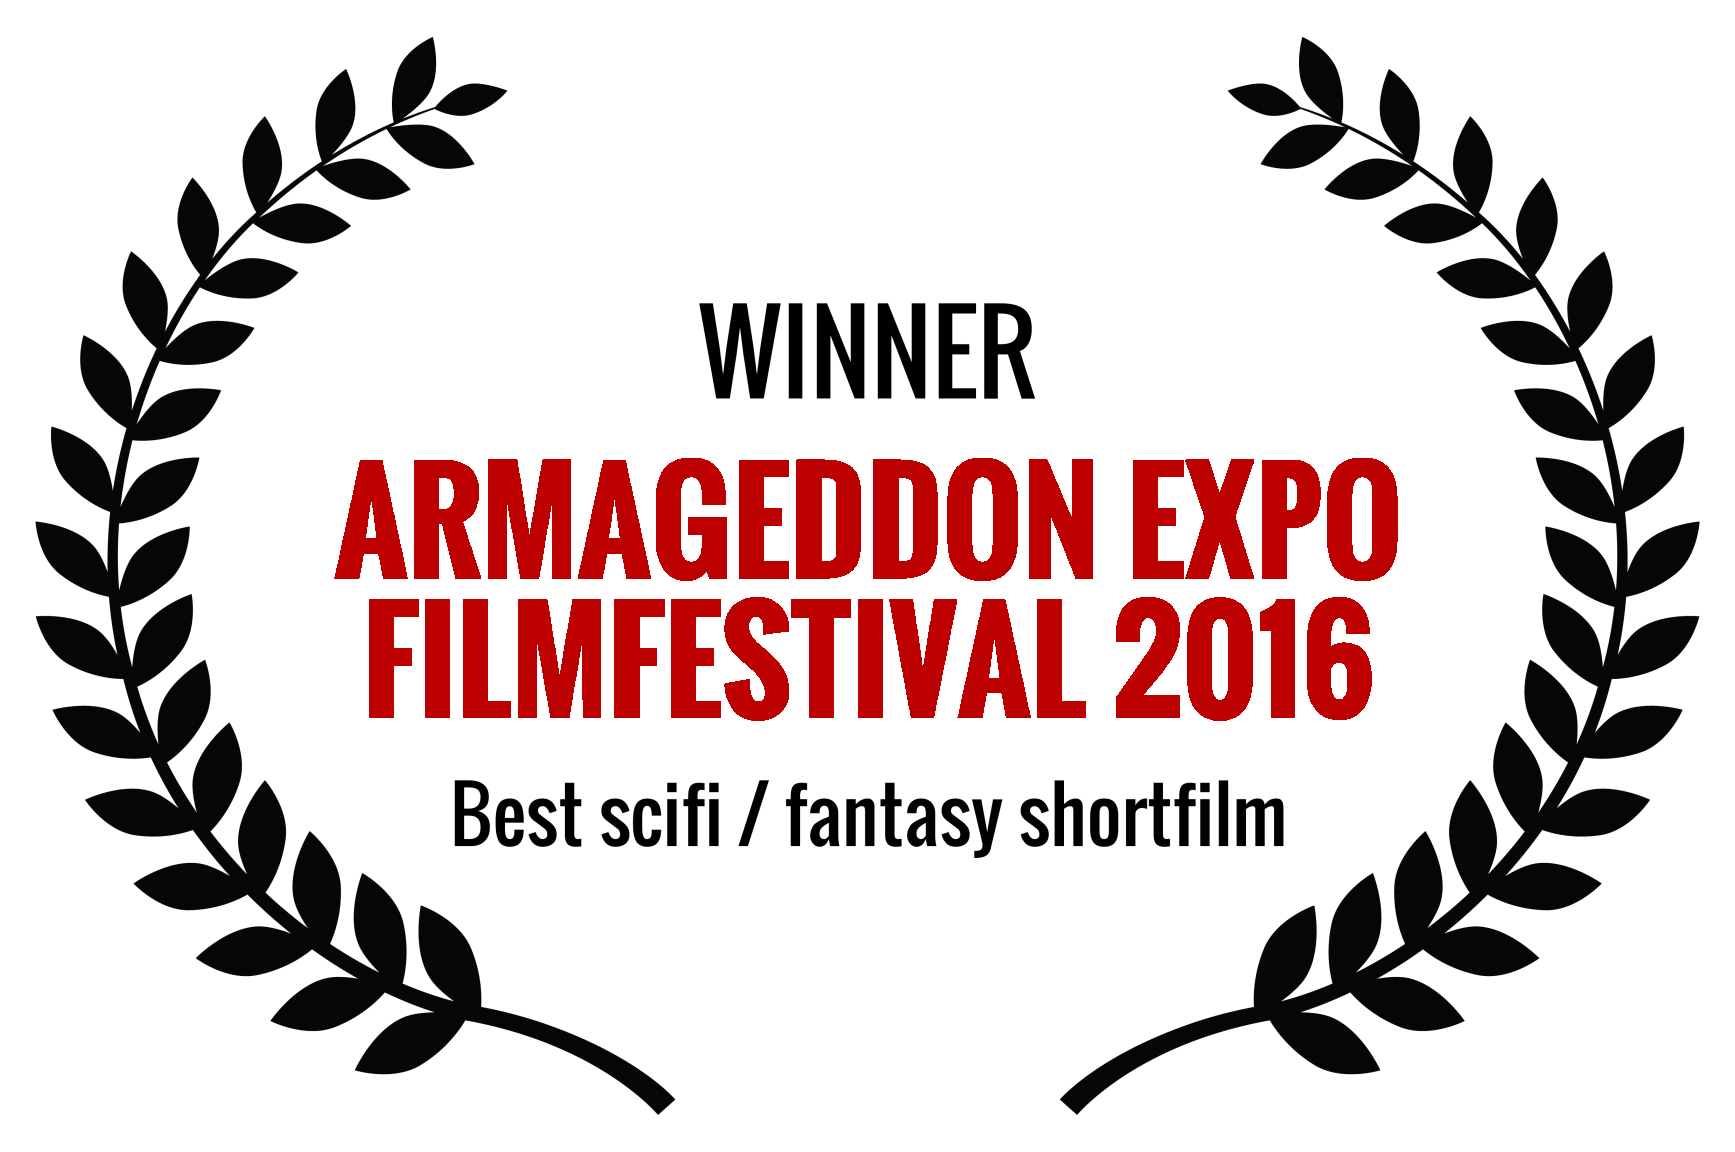 winner-armageddon-expo-filmfestival-2016-best-scifi-fantasy-shortfilm